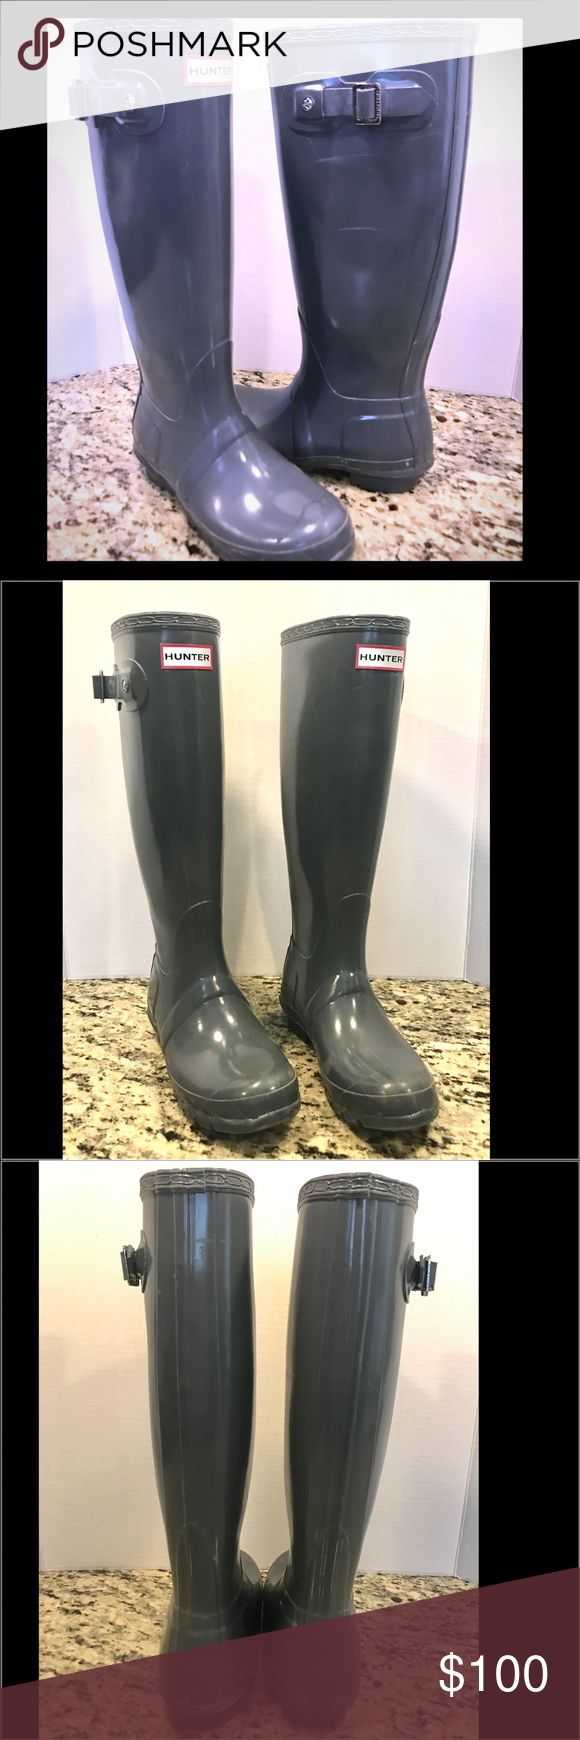 "Tall Grey Hunter Boots Tall Grey Hunter Boots.  Original Gloss Tall 23616 grey.  16"" tall. 14.5"" calf circumference.   EUC.  Minor scuffing, but not bad.  Please feel free to ask any questions!   Item #1320 Hunter Boots Shoes Winter & Rain Boots"